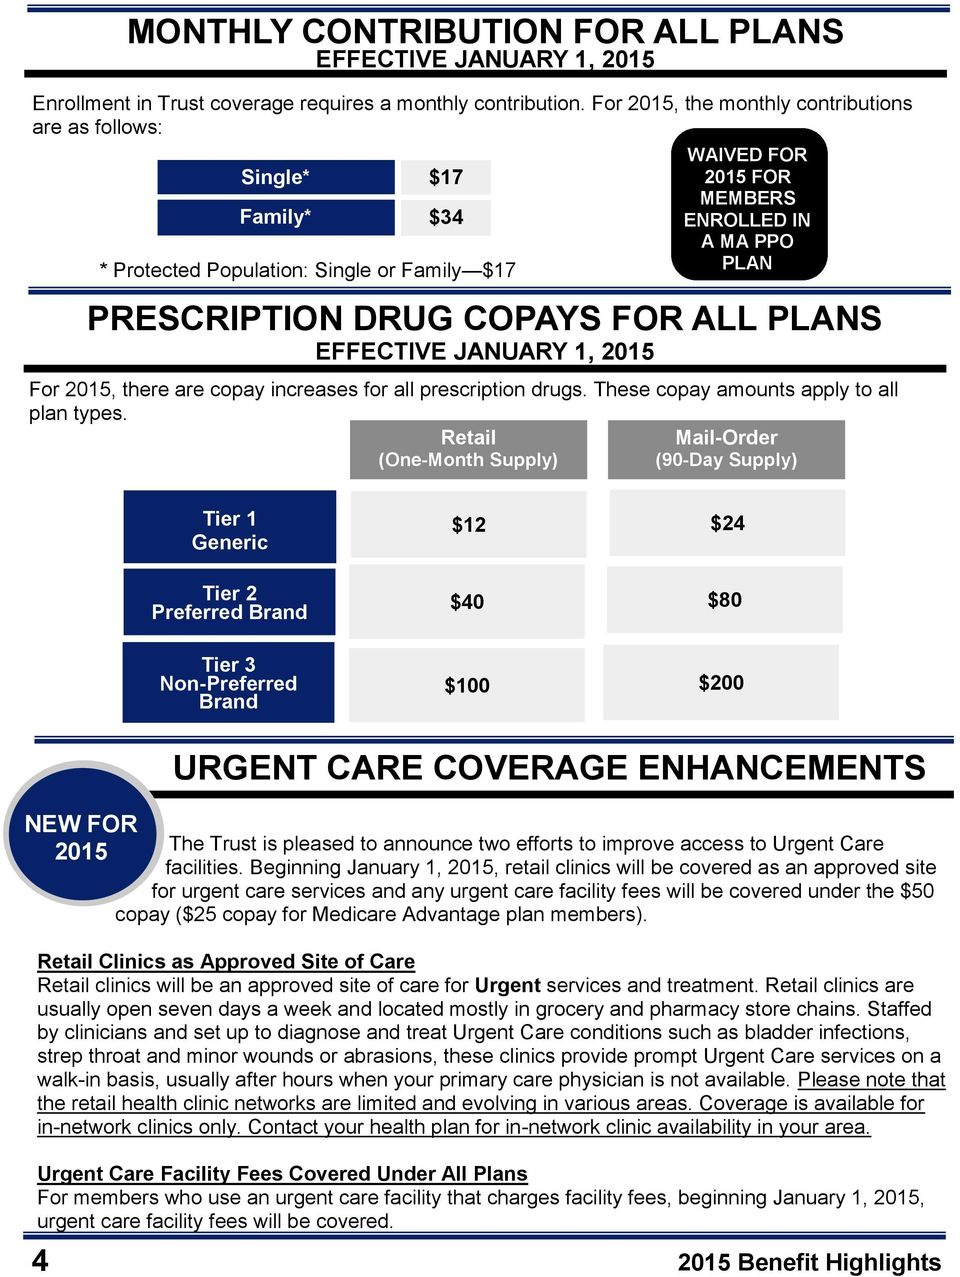 FOR ALL PLANS For 2015, there are copay increases for all prescription drugs. These copay amounts apply to all plan types.